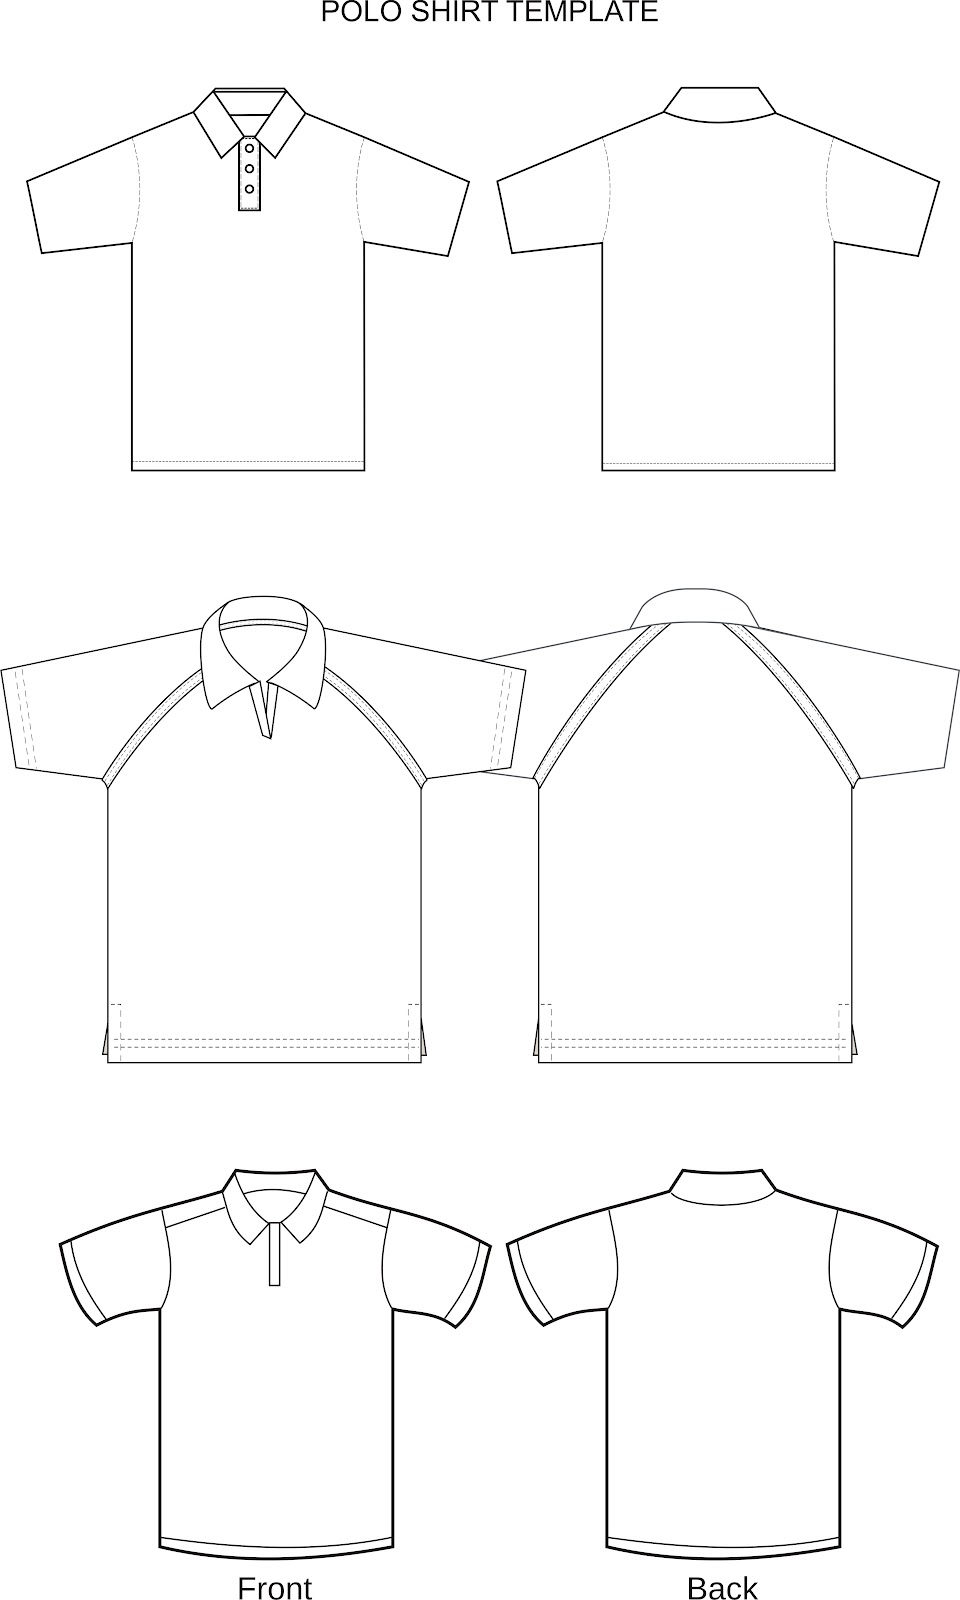 Polo shirt template joy studio design gallery best design for Polo shirt design template